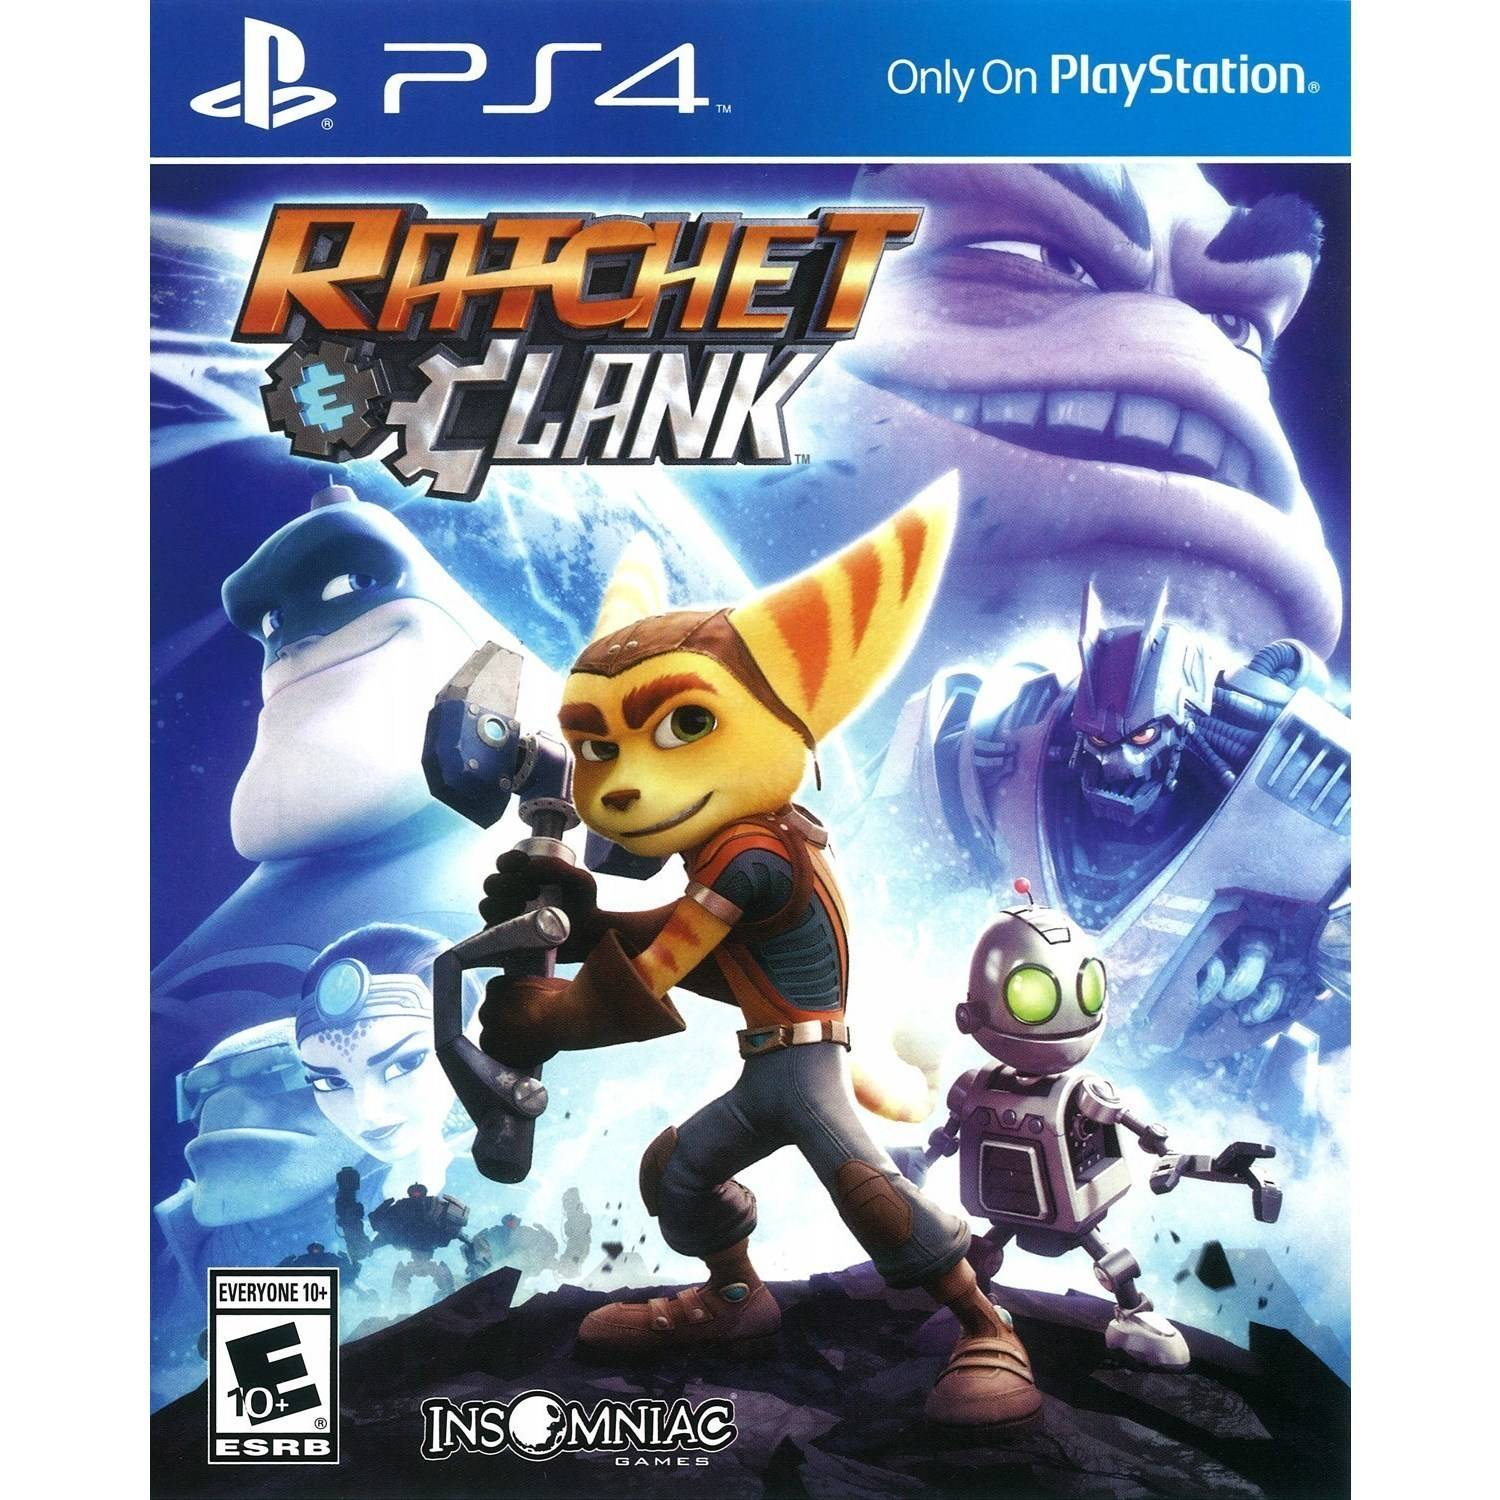 Sony Ratchet & Clank - Action/Adventure Game - PlayStation 4